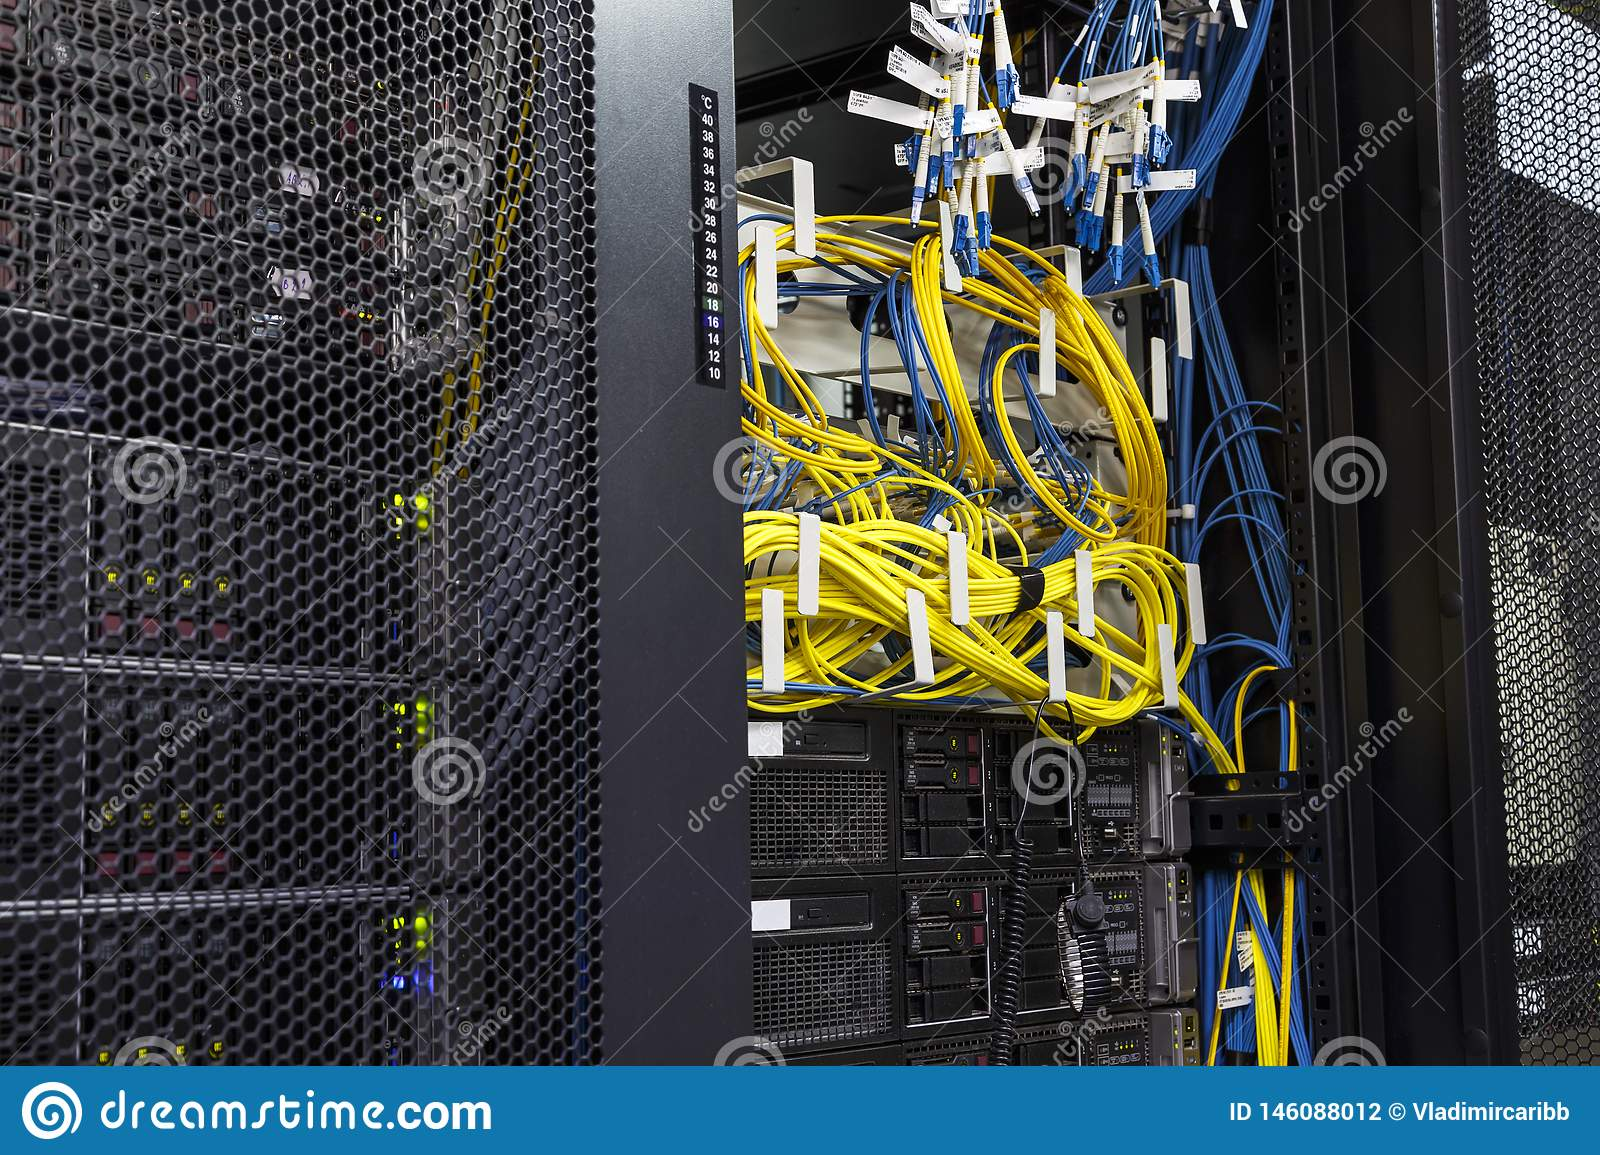 Technology Network Cable Network Server Room Routers With Fusebox Panel Stock Photo Image Of Array Optic 146088012